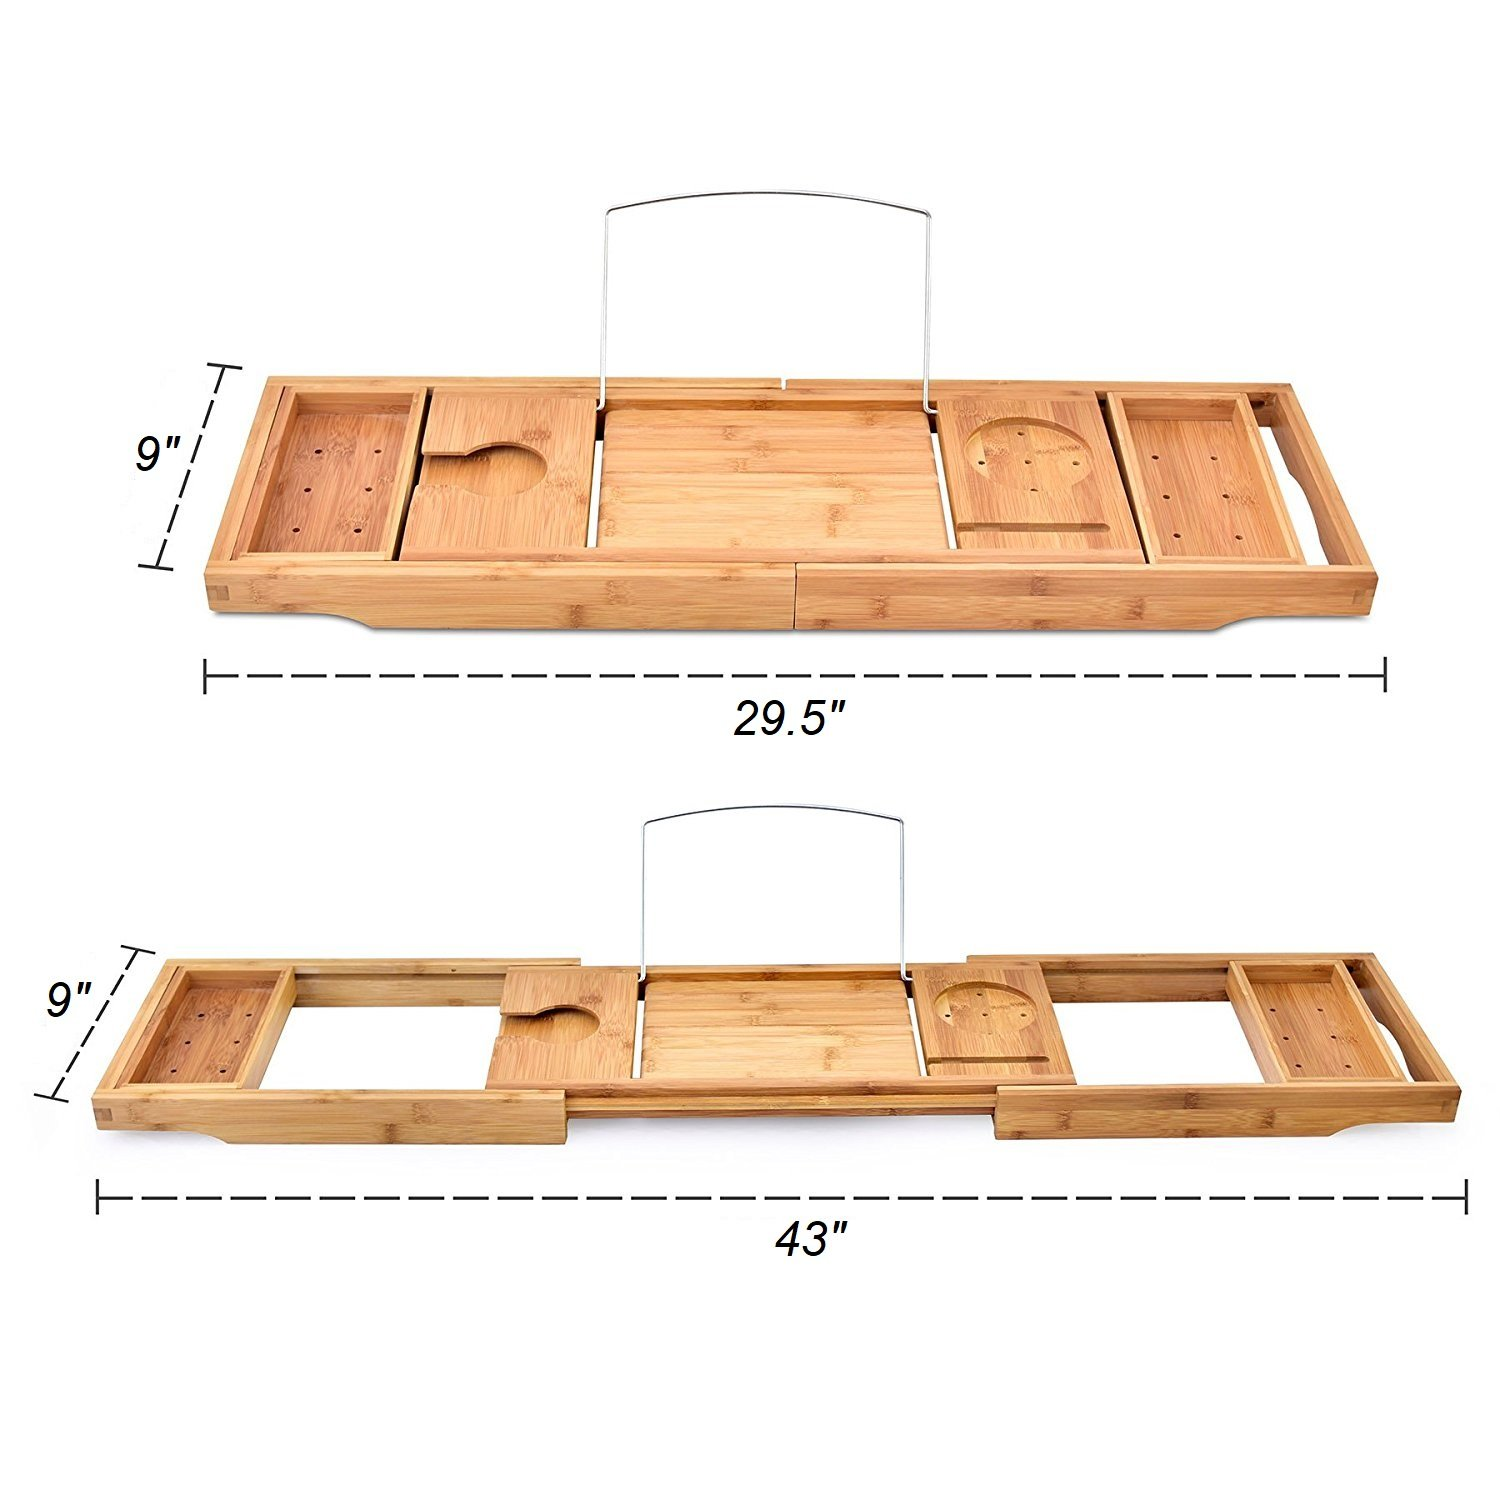 YYY Luxury Extendable Bamboo Bathtub Caddy Tray, Adjustable Tablet, Phone Holder/Wine Glass Slot/2 Towel Tray